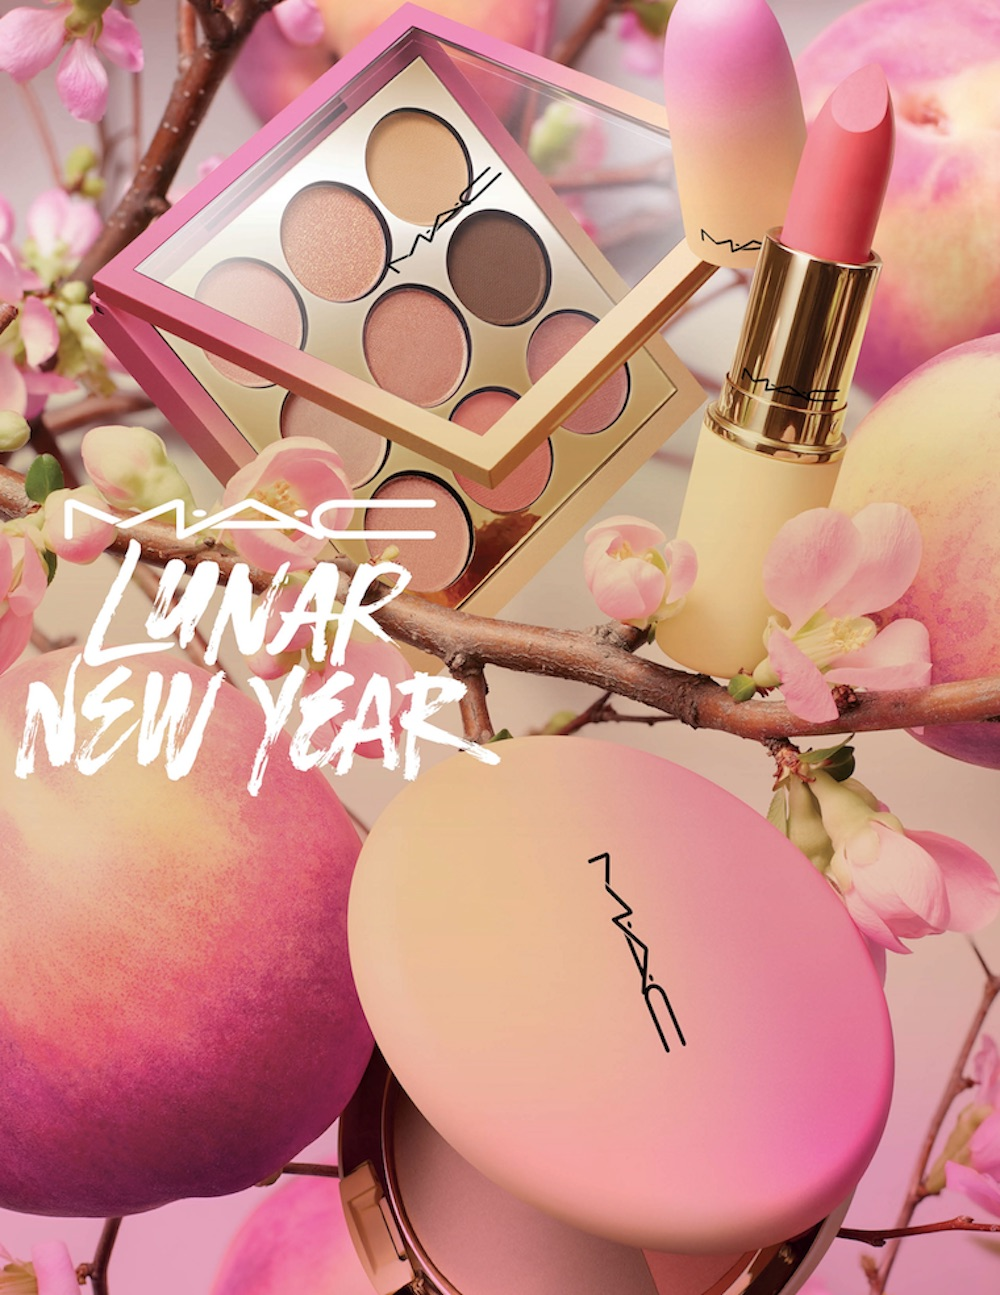 MAC's Lunar New Year makeup collection is peach perfect